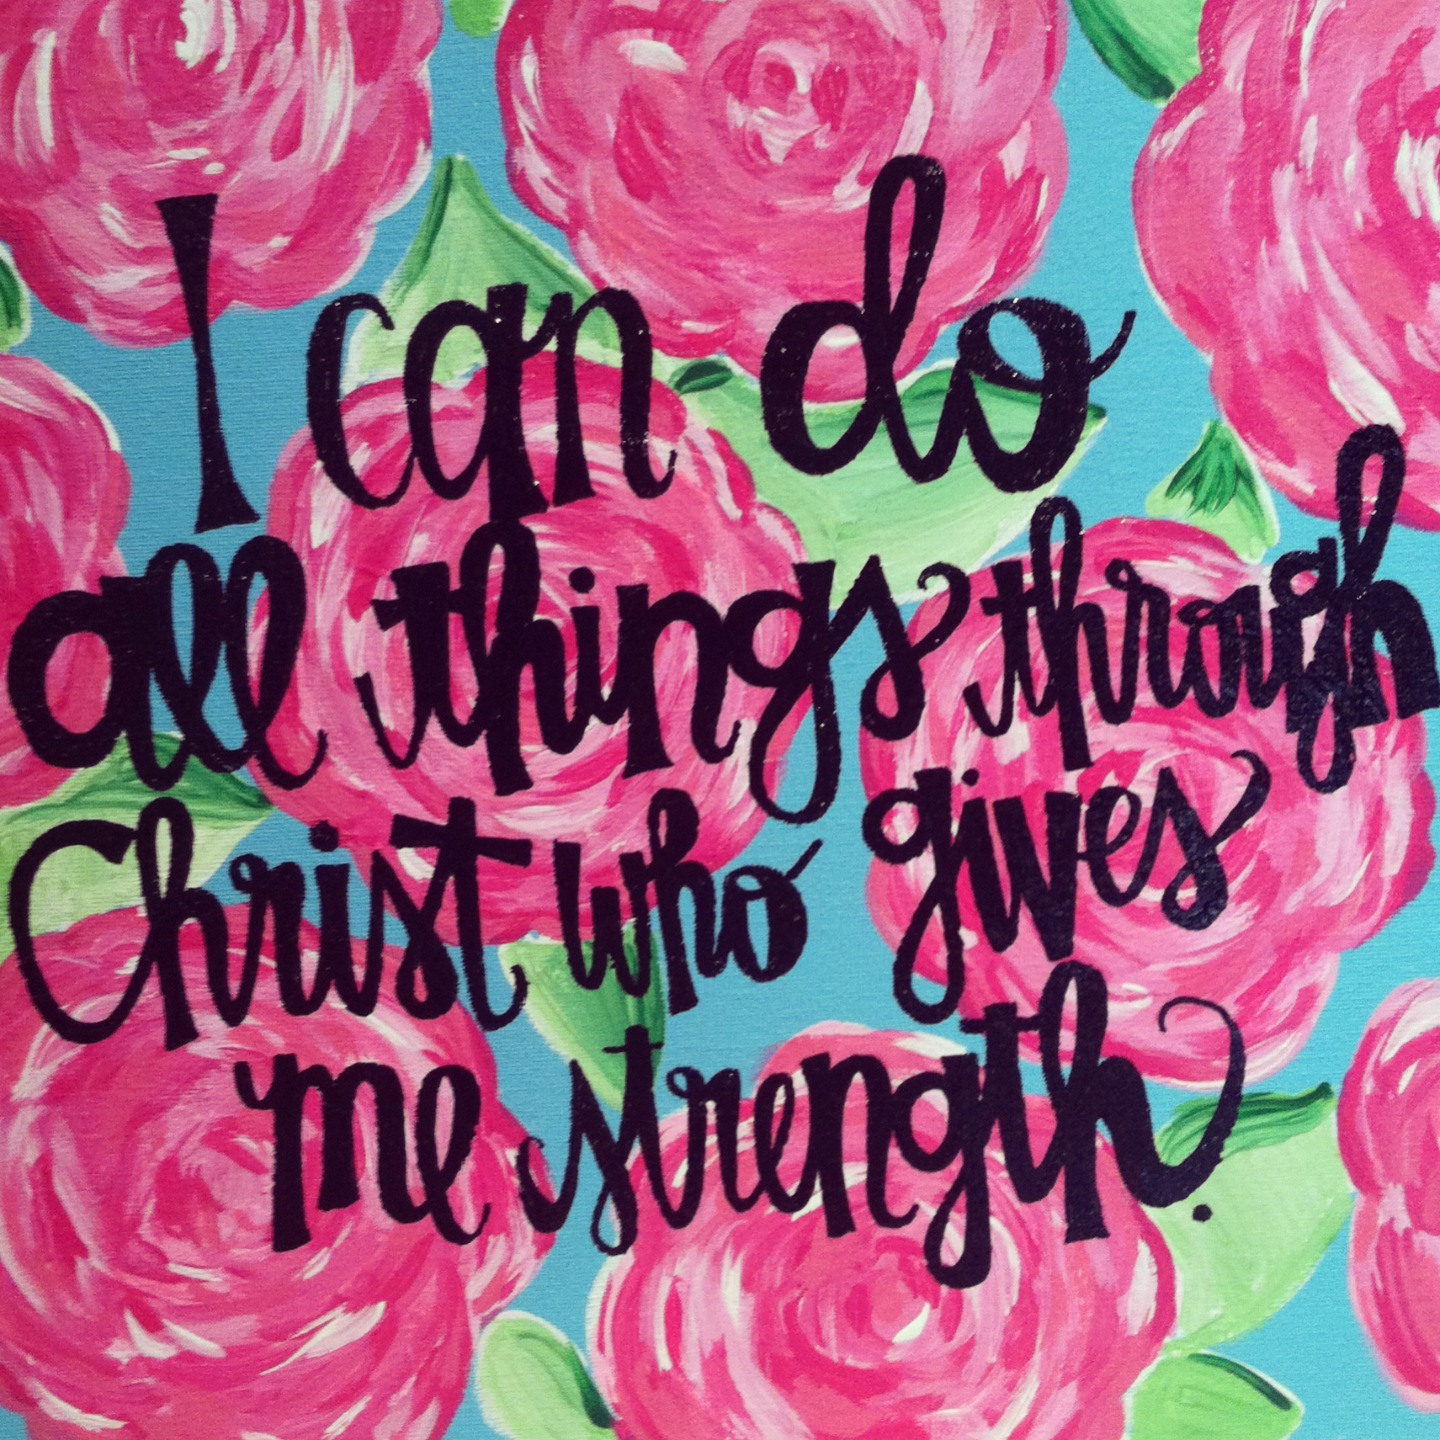 Book Quotes Wallpaper Cursive Lilly Pulitzer Backgrounds With Bible Verses Www